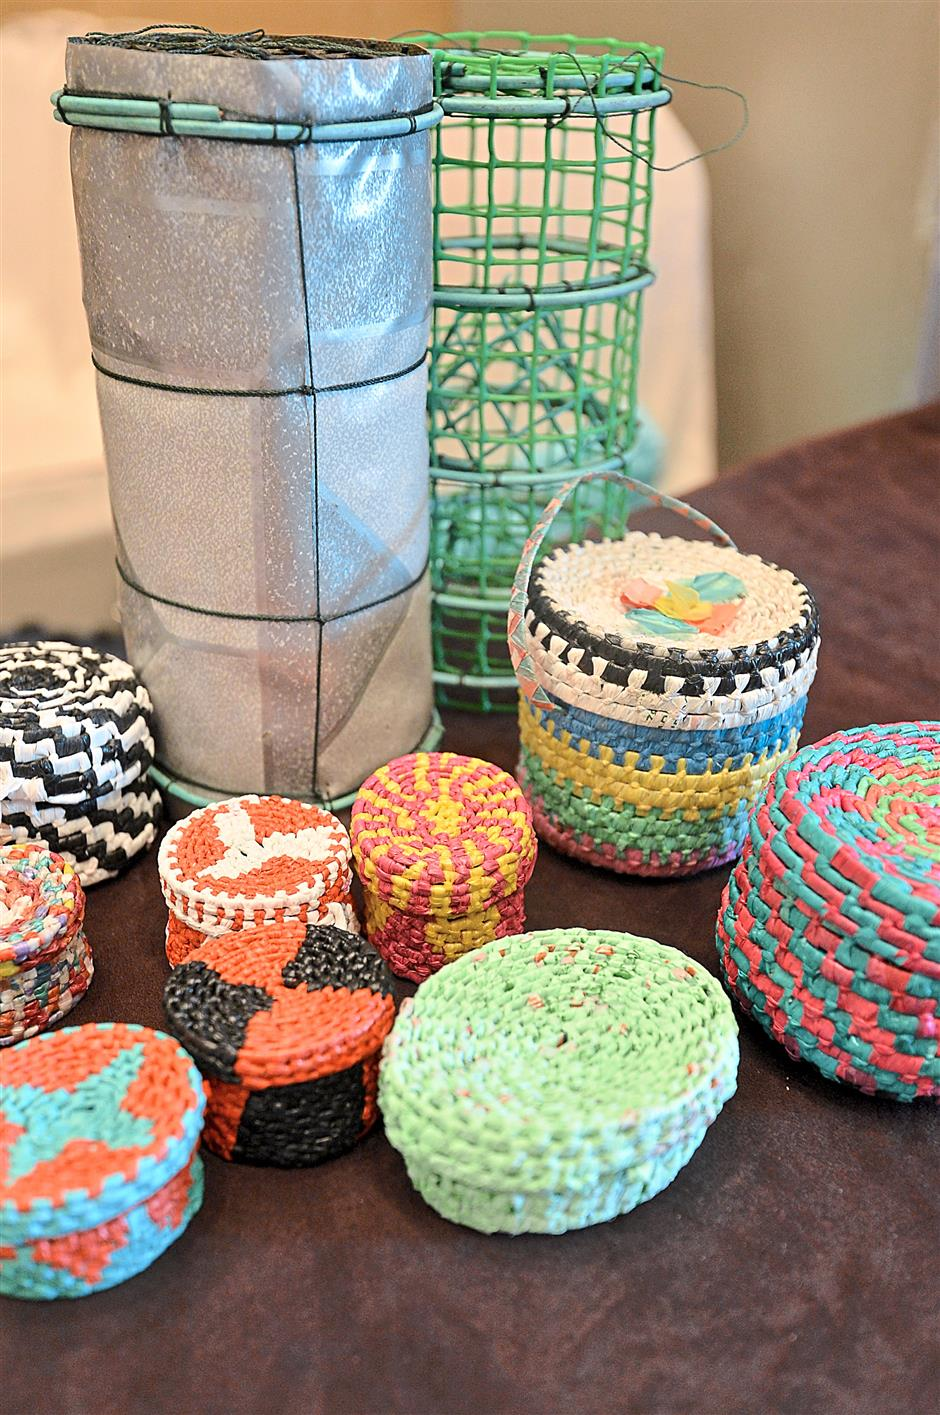 Some of this attractive souvenirs that was created from discarded items seen here.